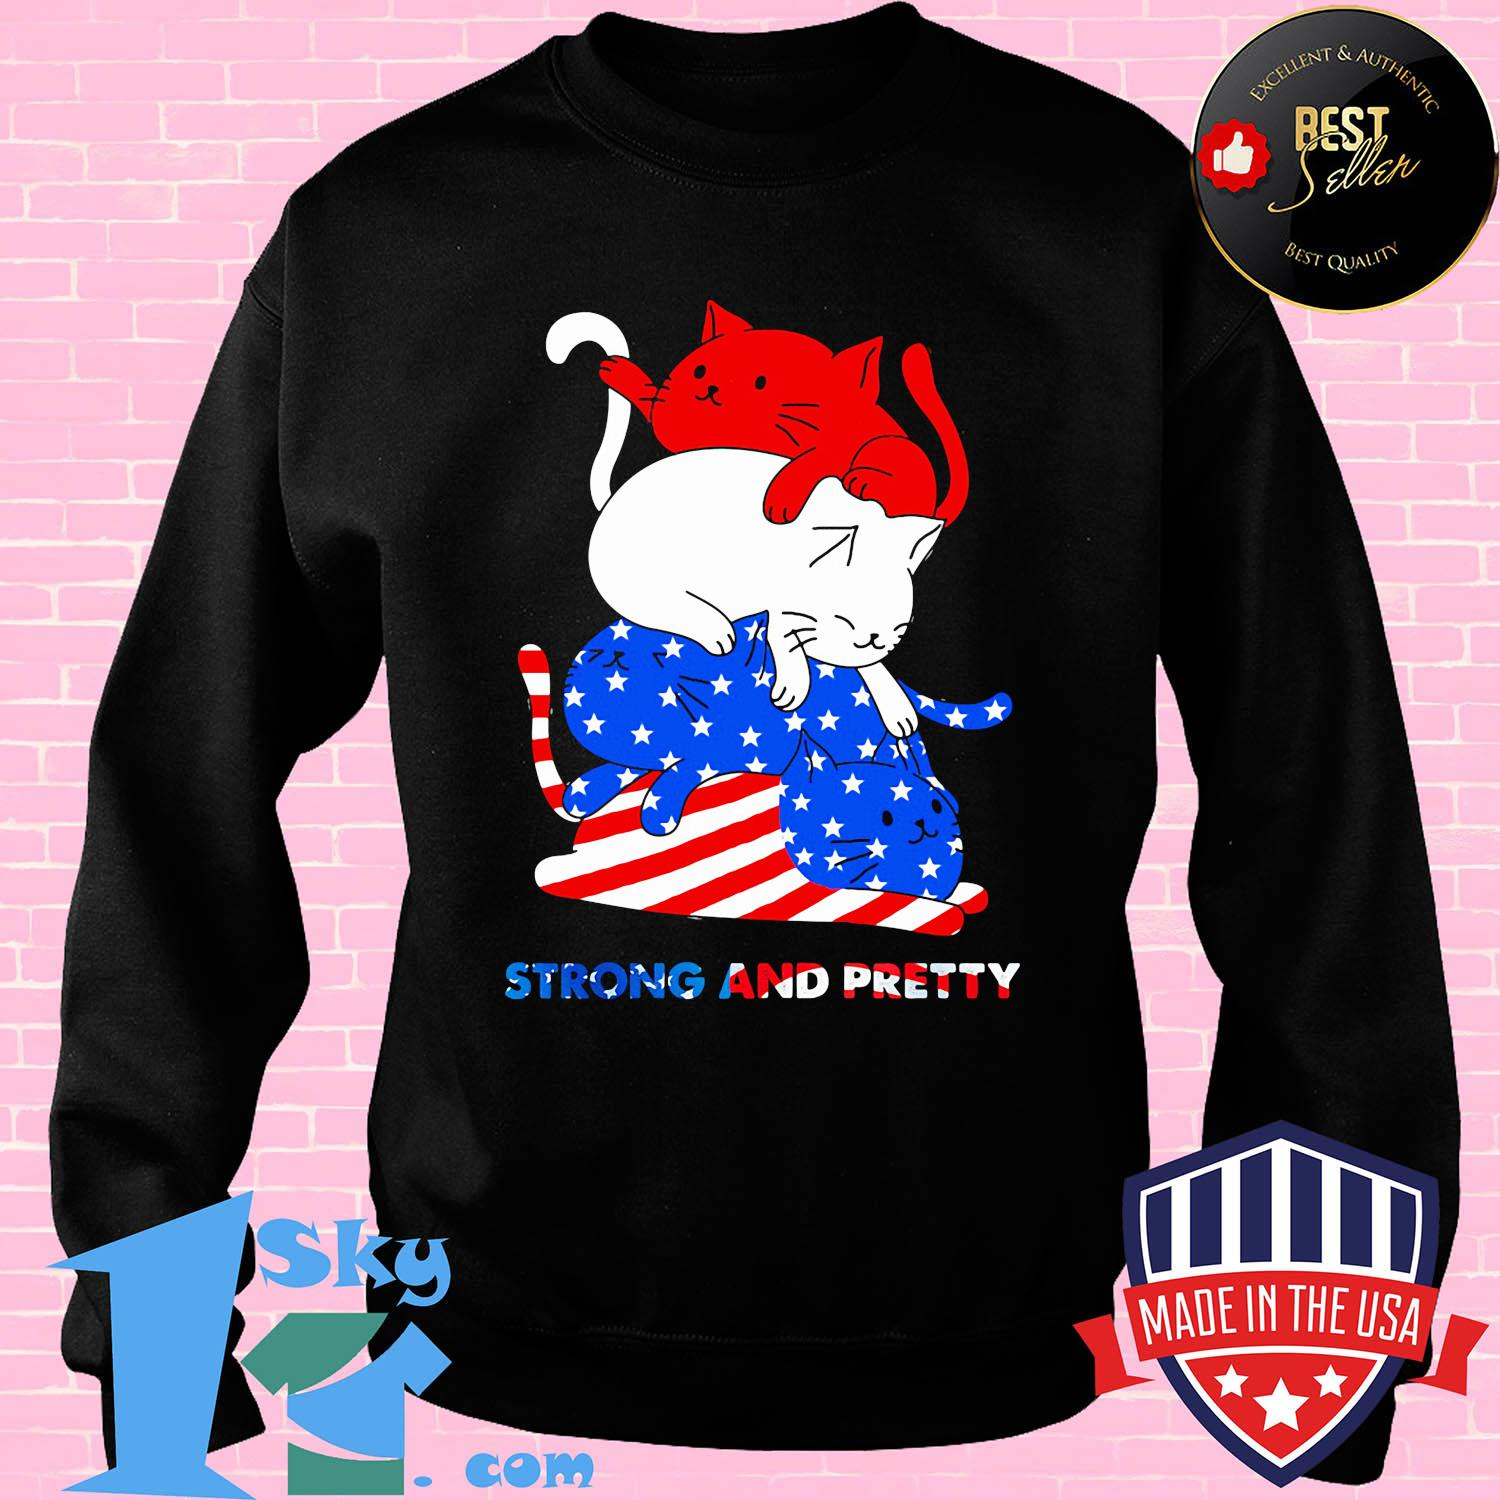 In 7 cat strong and pretty American flag veteran Independence Day shirt